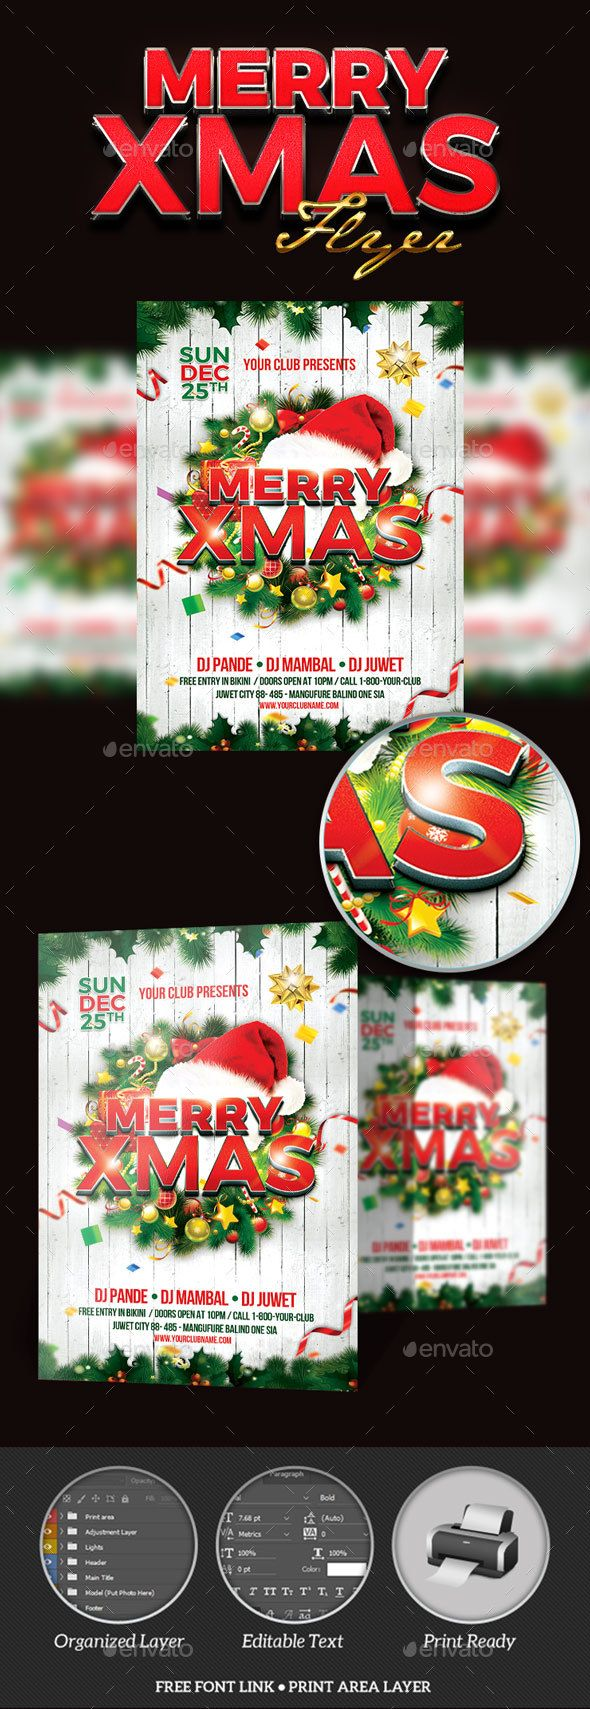 best images about christmas flyer templates merry xmas party flyer